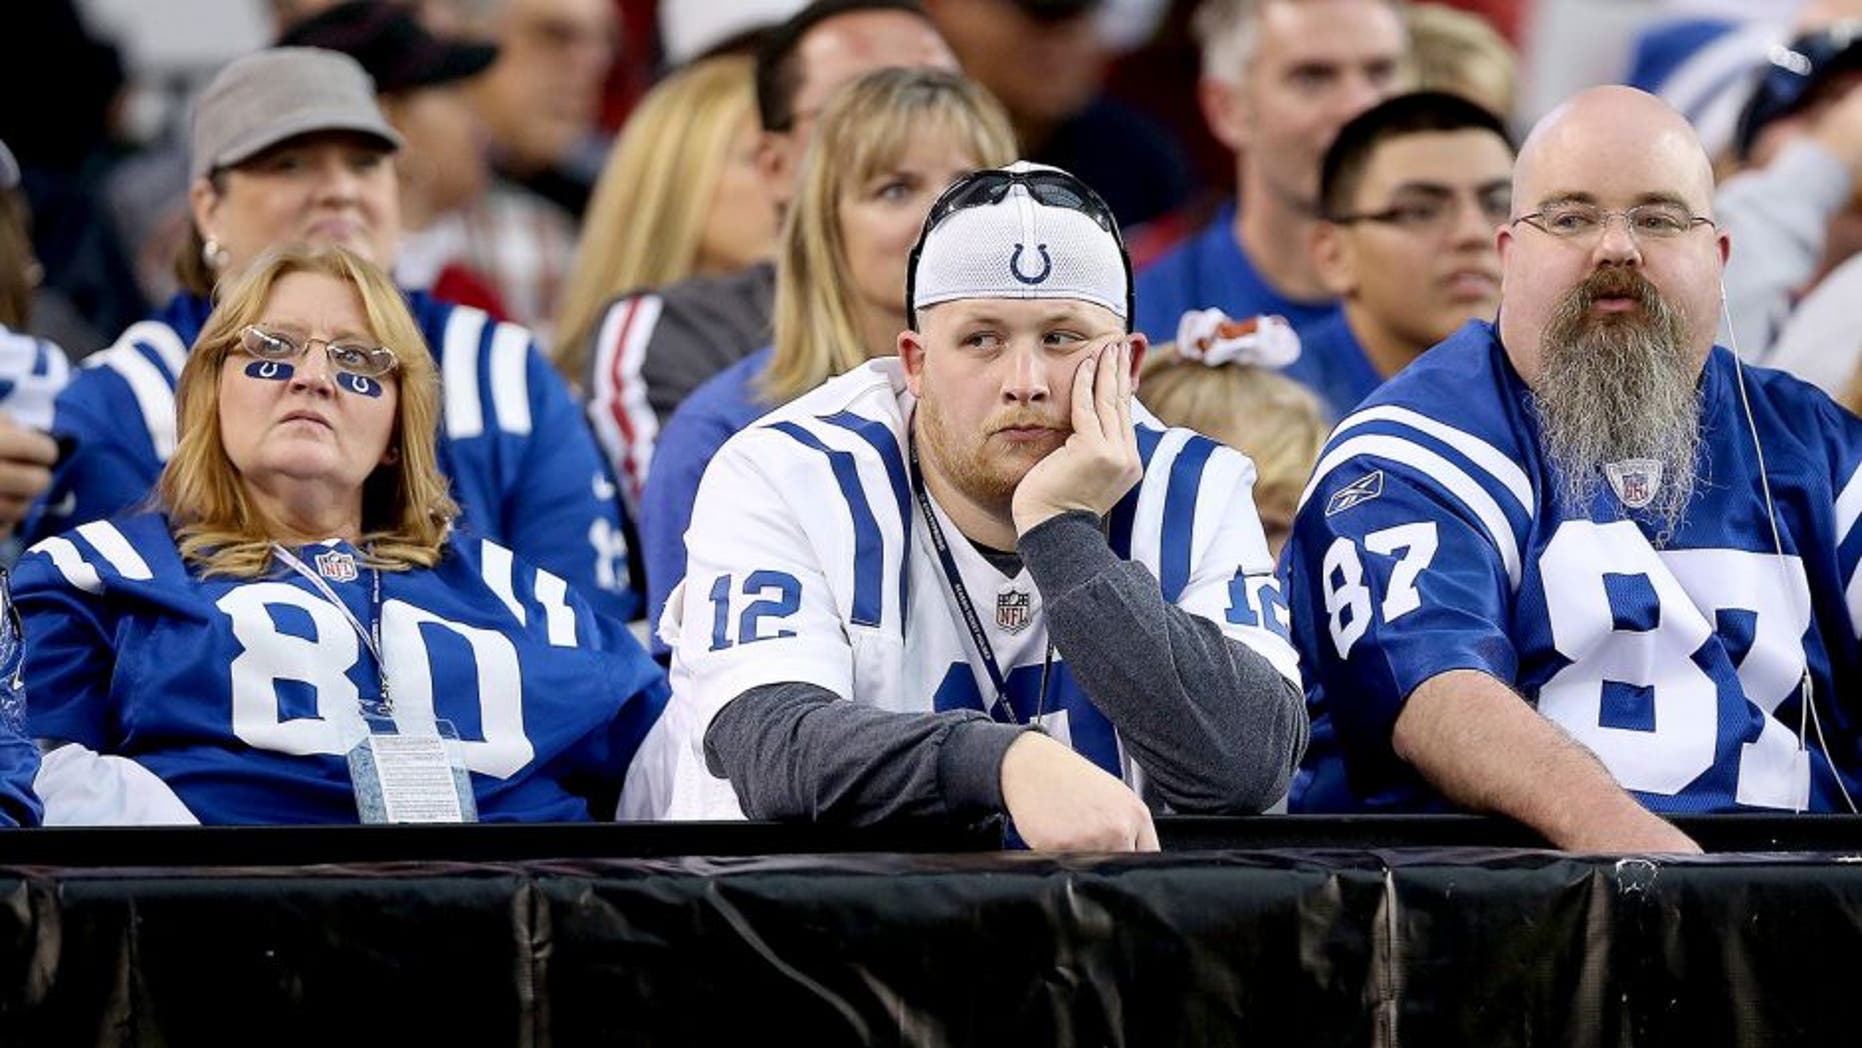 GLENDALE, AZ - NOVEMBER 24: Fans of the Indianapolis Colts react during the NFL game against the Arizona Cardinals at the University of Phoenix Stadium on November 24, 2013 in Glendale, Arizona. (Photo by Christian Petersen/Getty Images)